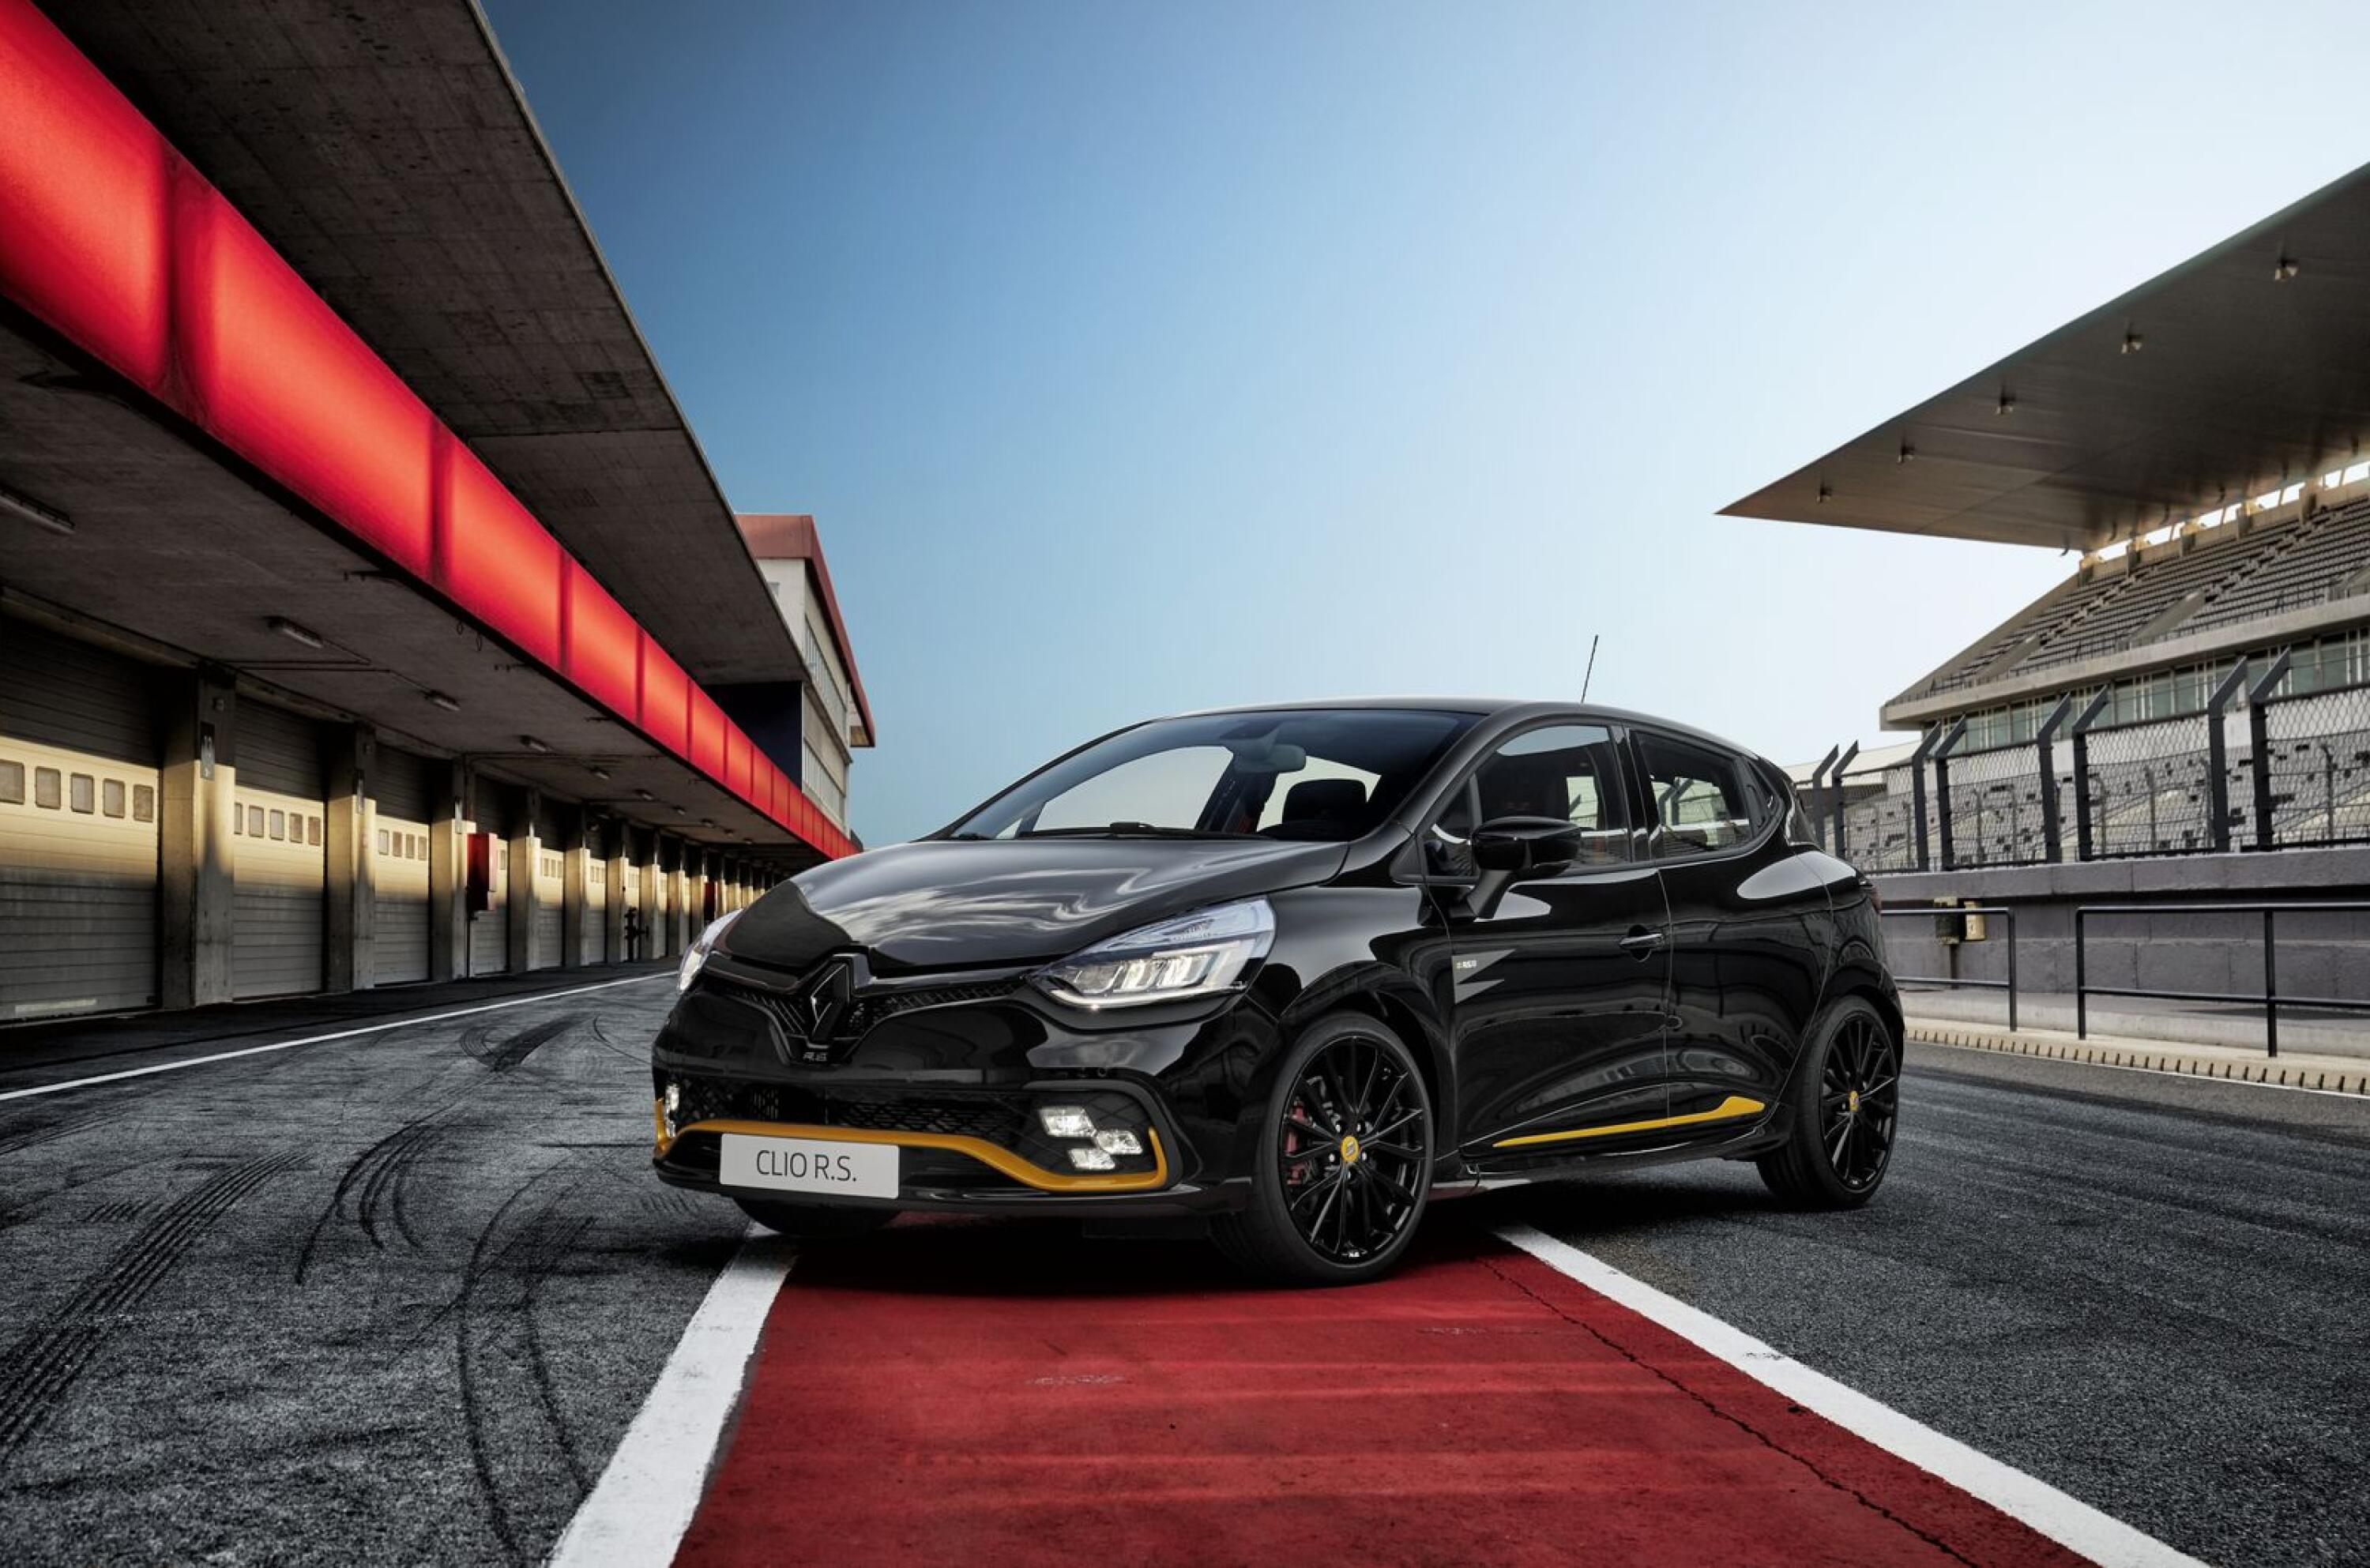 RenaultSport is now a part of Renault's Alpine operation, which means we might not see cooking models in SA in future